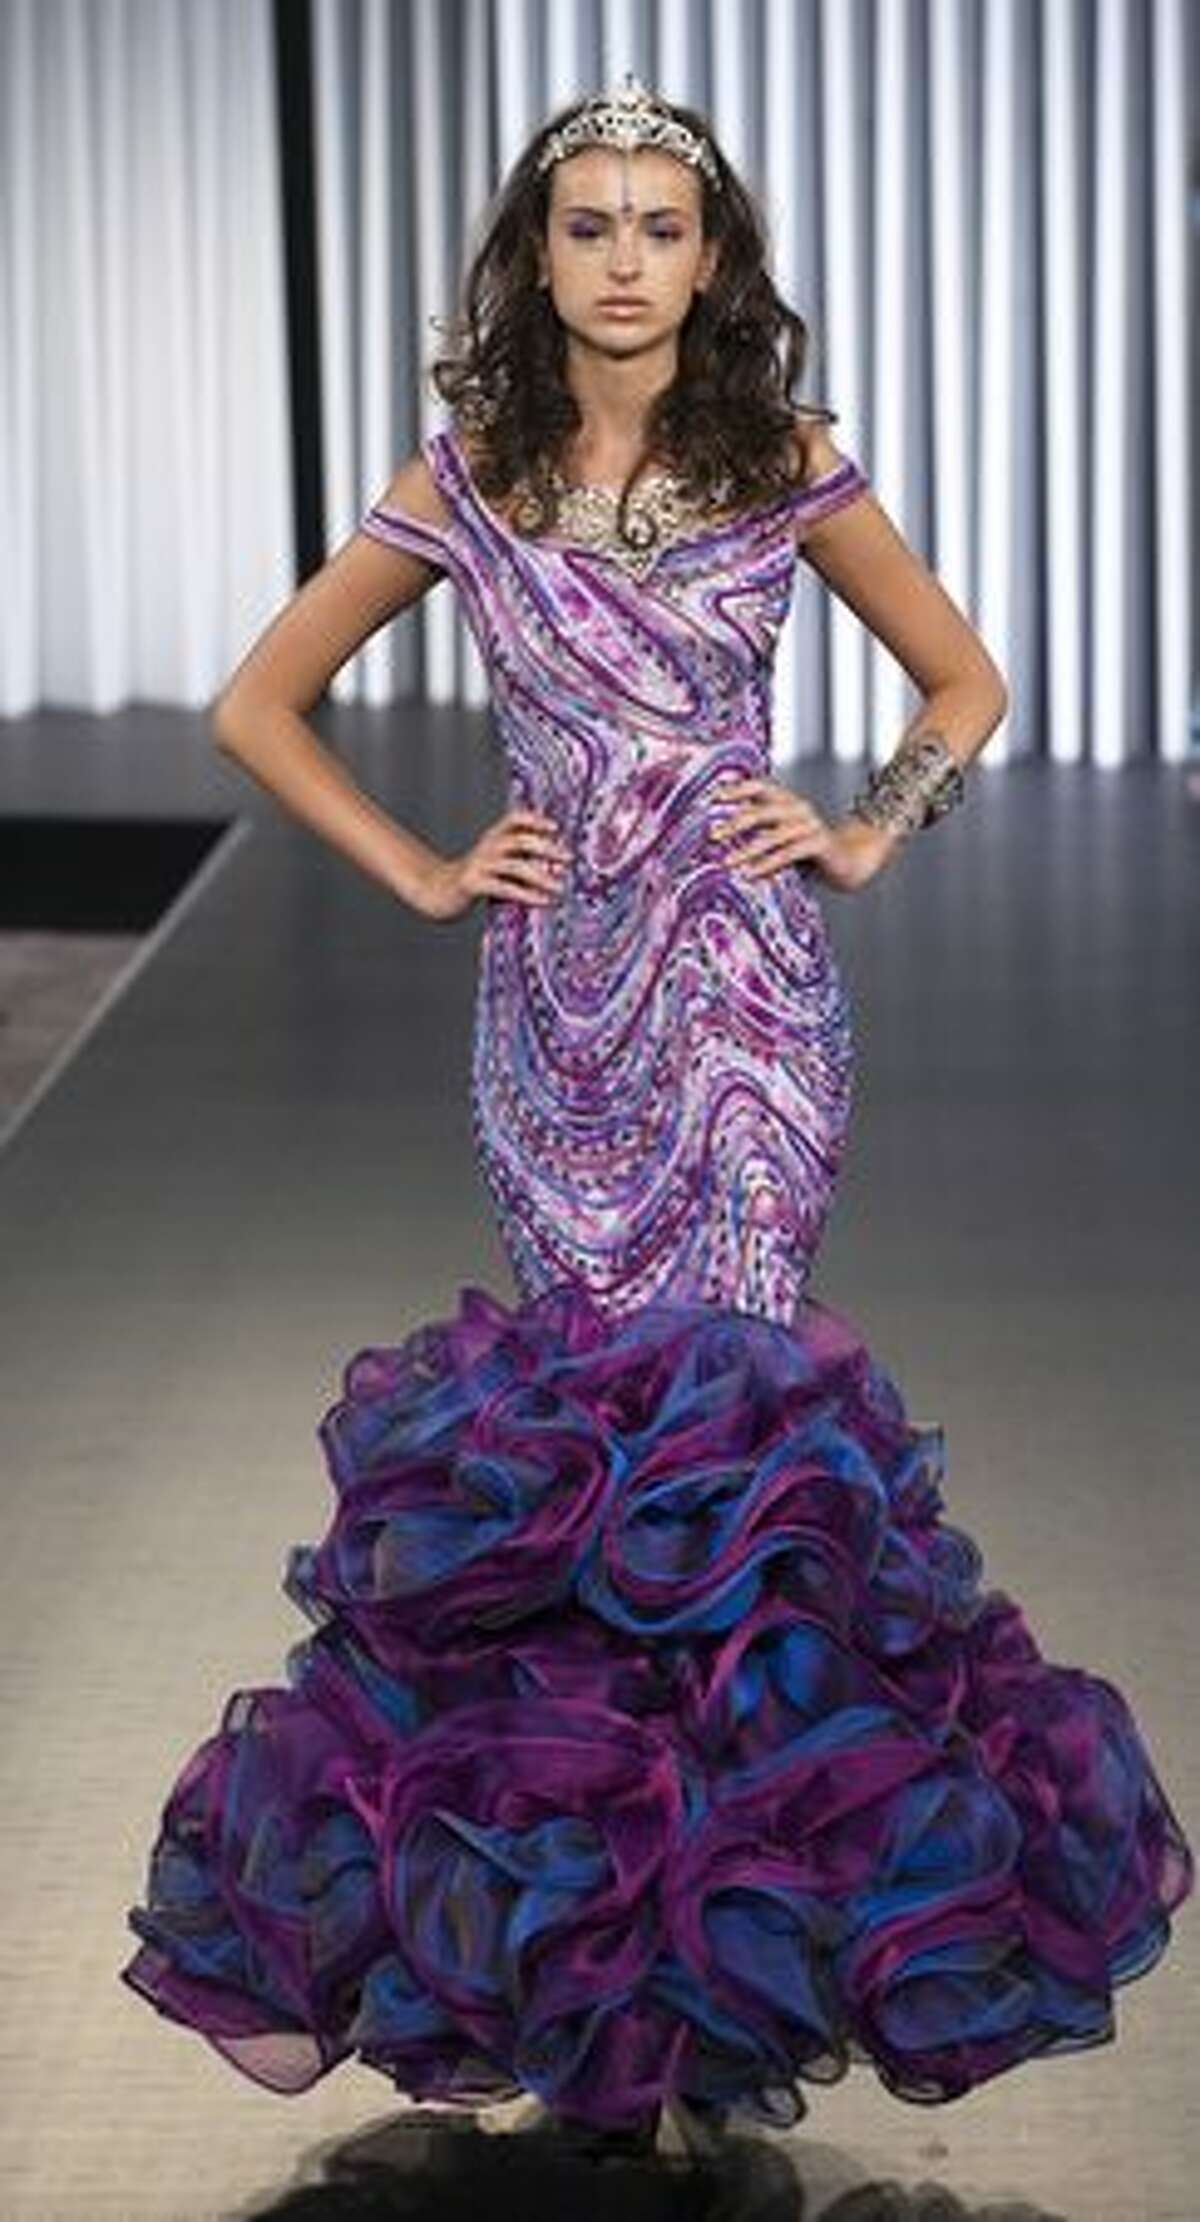 A model displays a creation by Ika Butoni on the catwalk during the